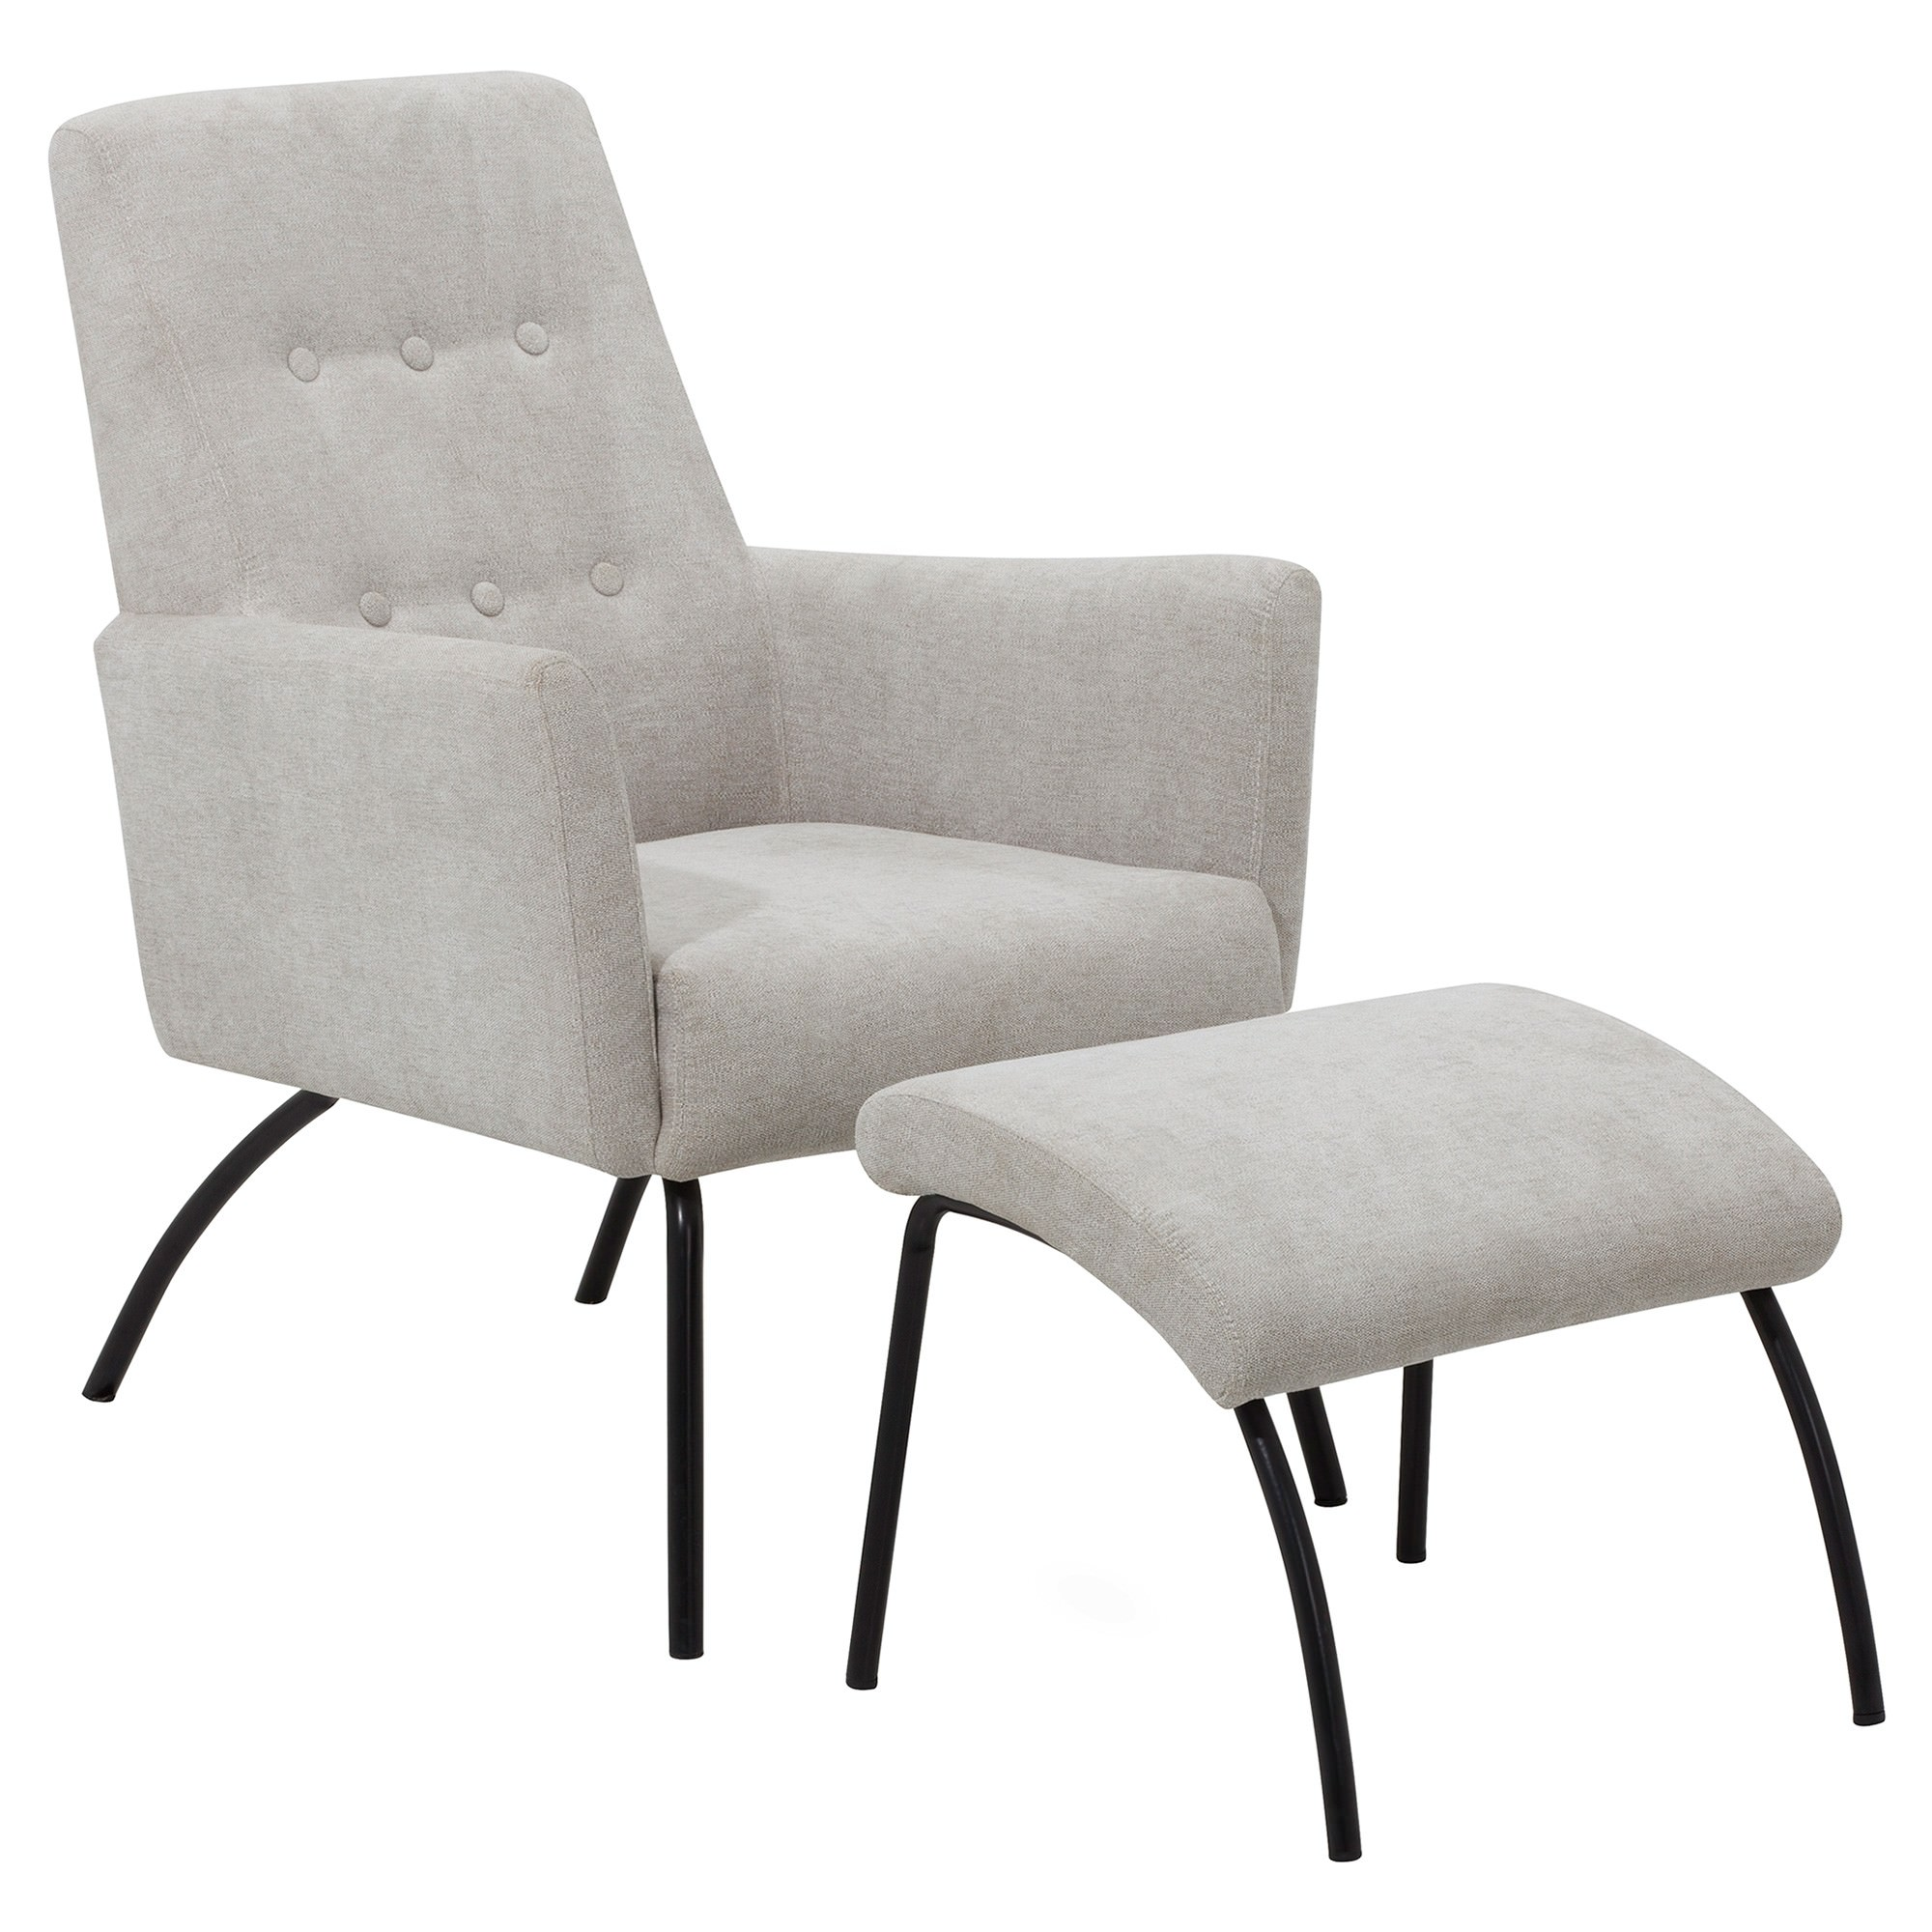 Foxton Fabric Leisure Armchair with Footstool